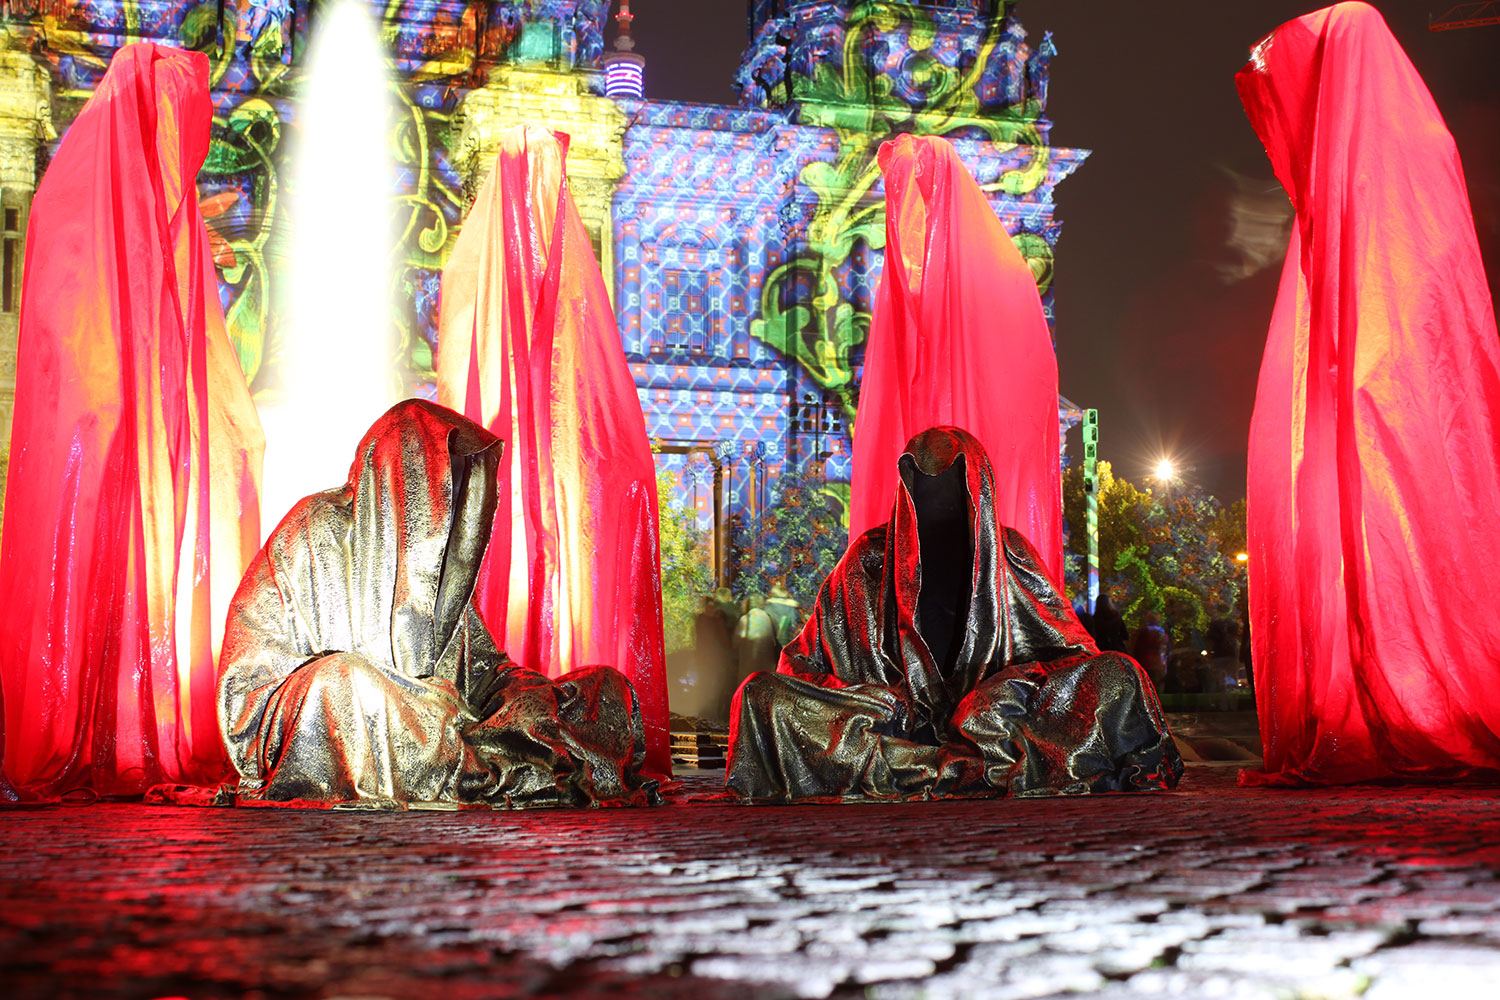 festival-of-lights-old-museum-cathedral-berlin-light-art-show-exhibition-lumina-guardians-of-time-manfred-kili-kielnhofer-contemporary-arts-design-sculpture-3012